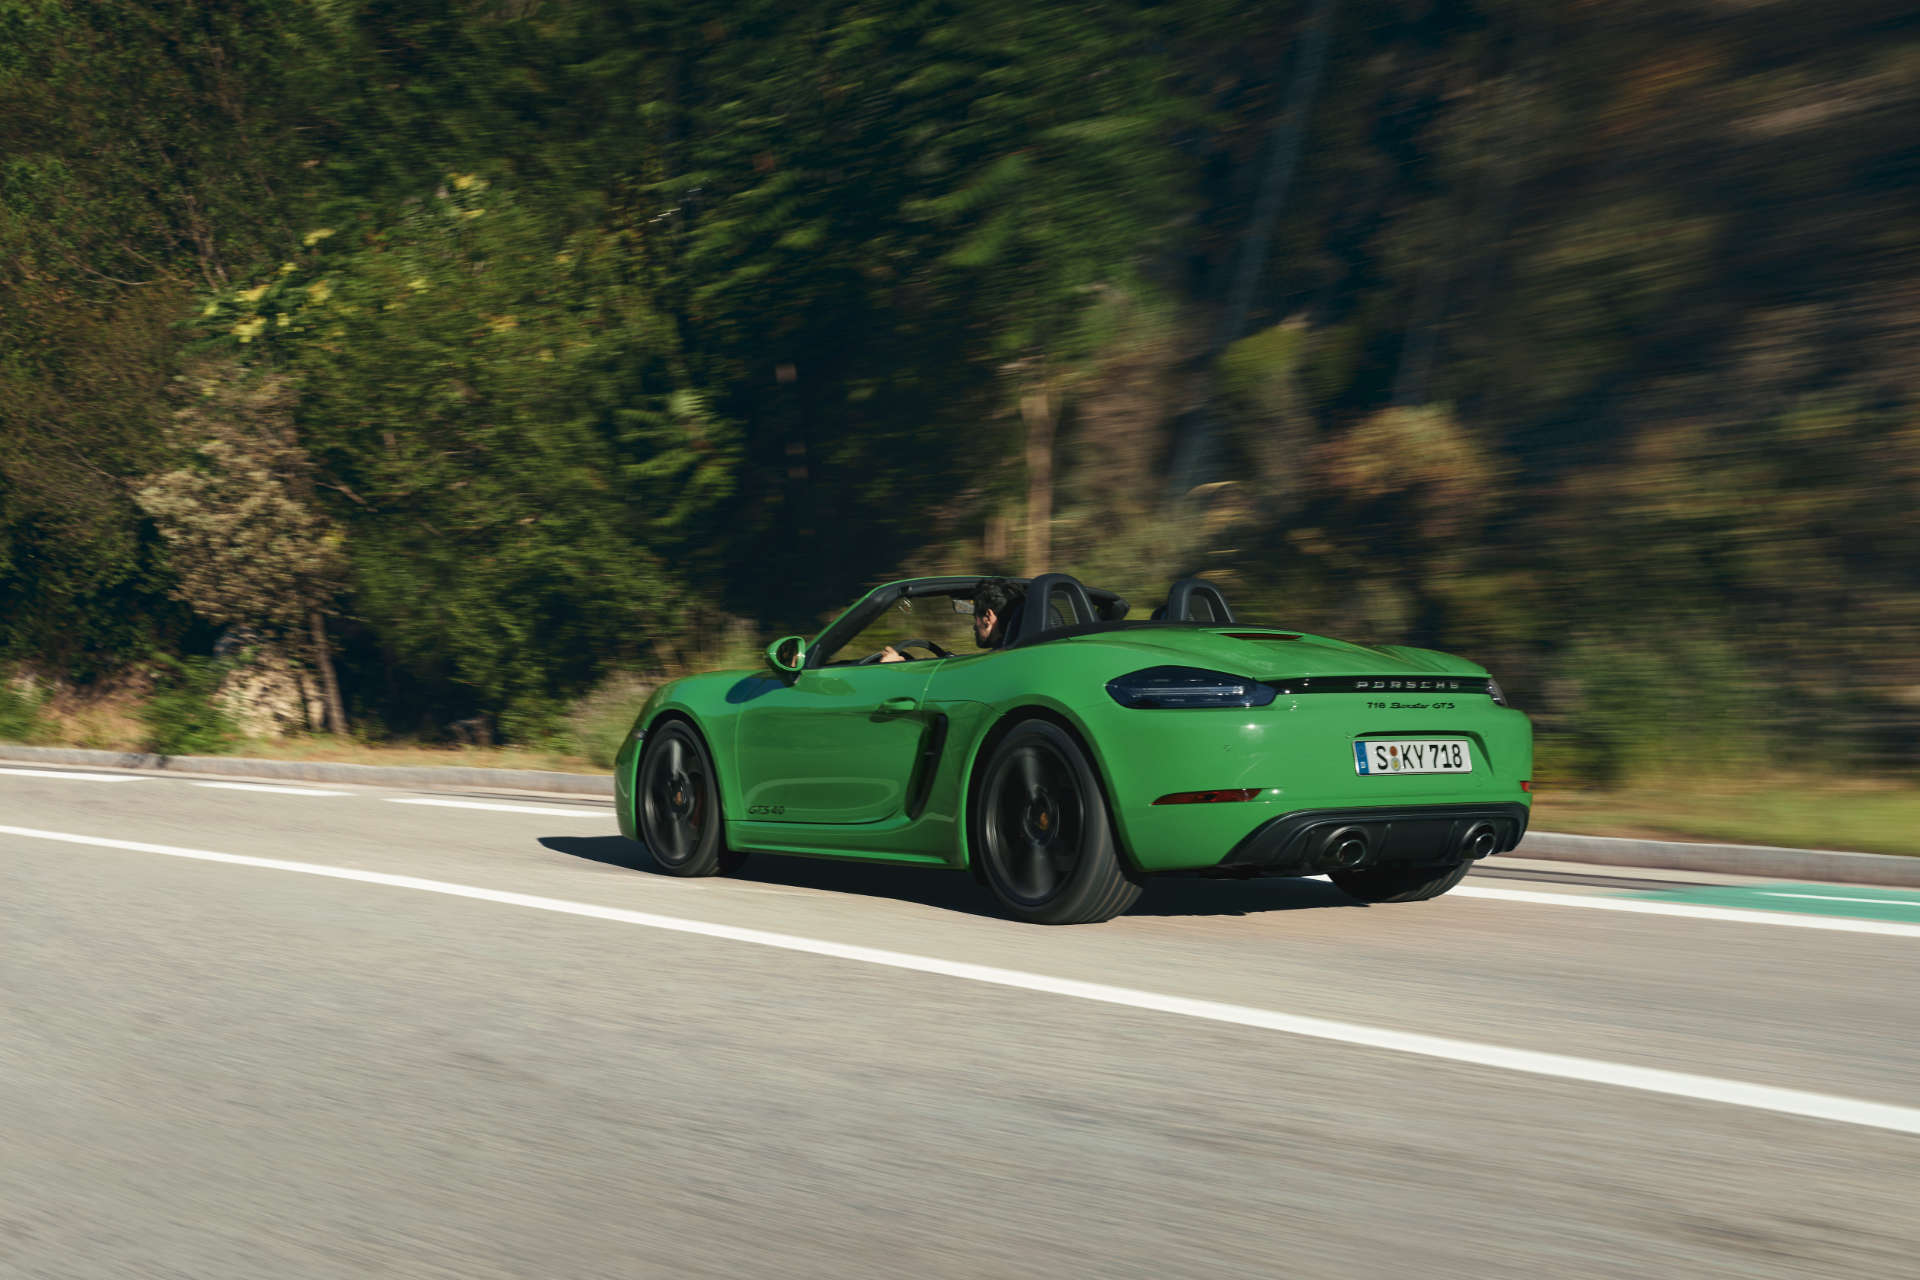 Boxster 718 GTS 4.0